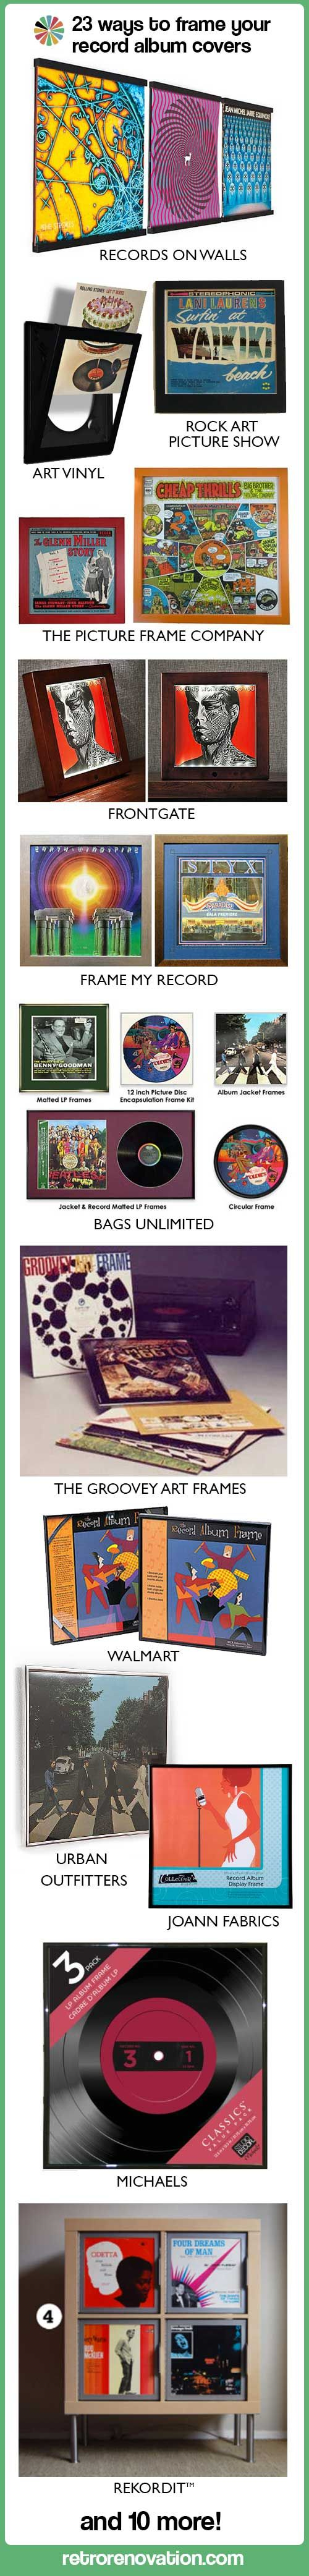 23 ways to frame your record album covers | My Style | Pinterest ...